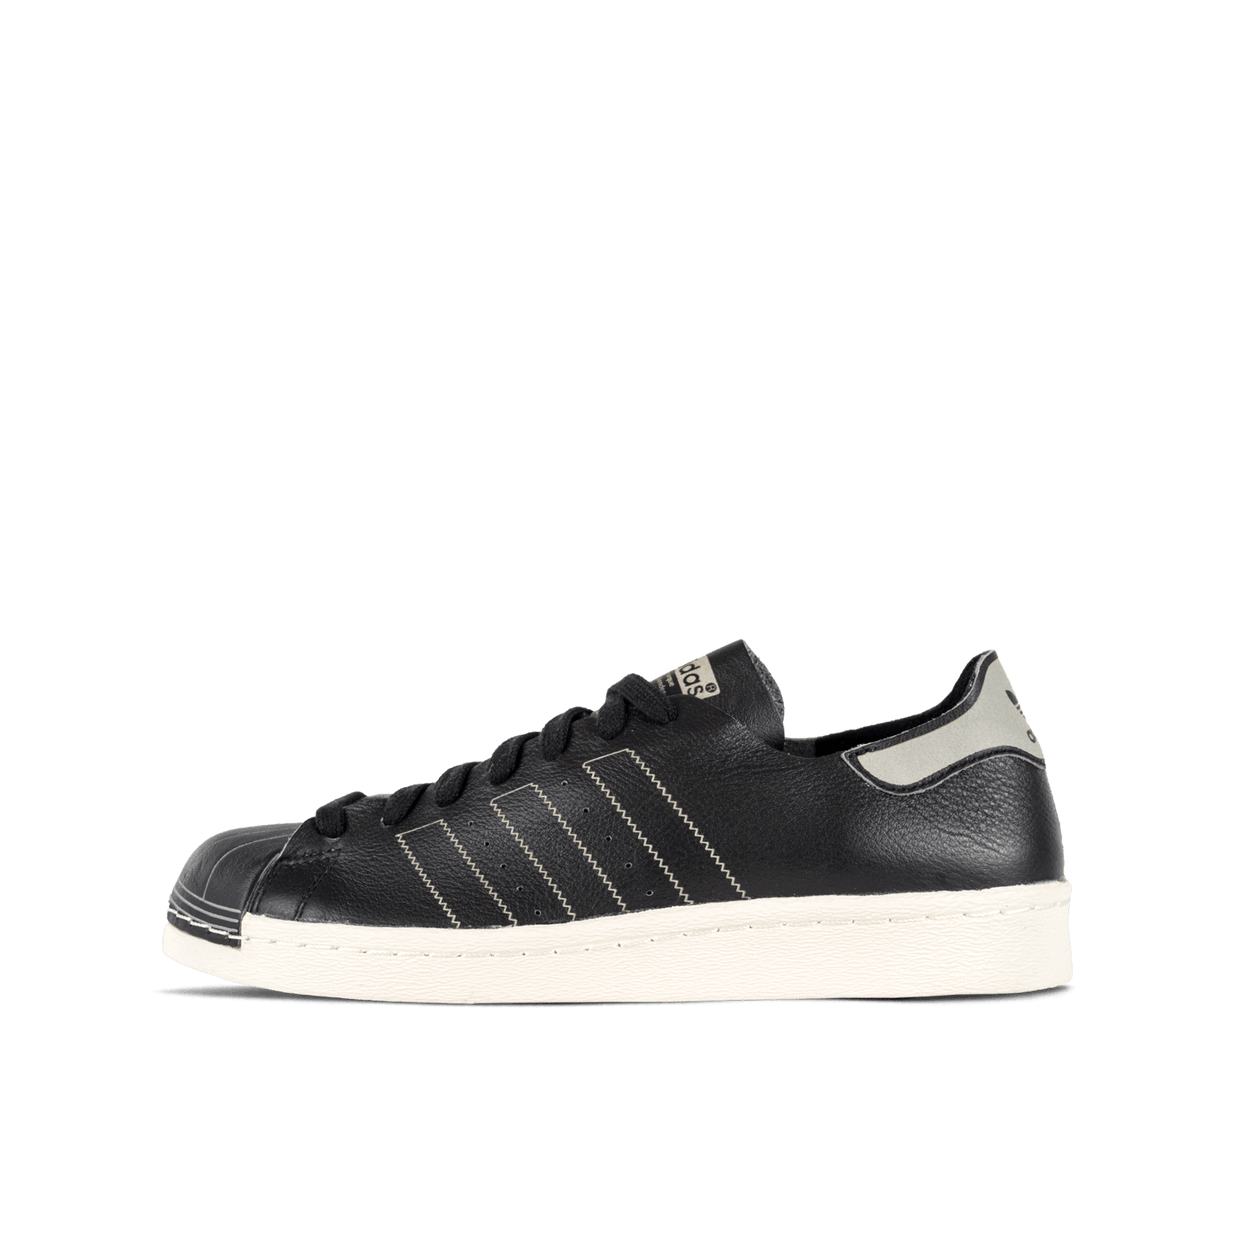 Superstar 80s Decon - Black